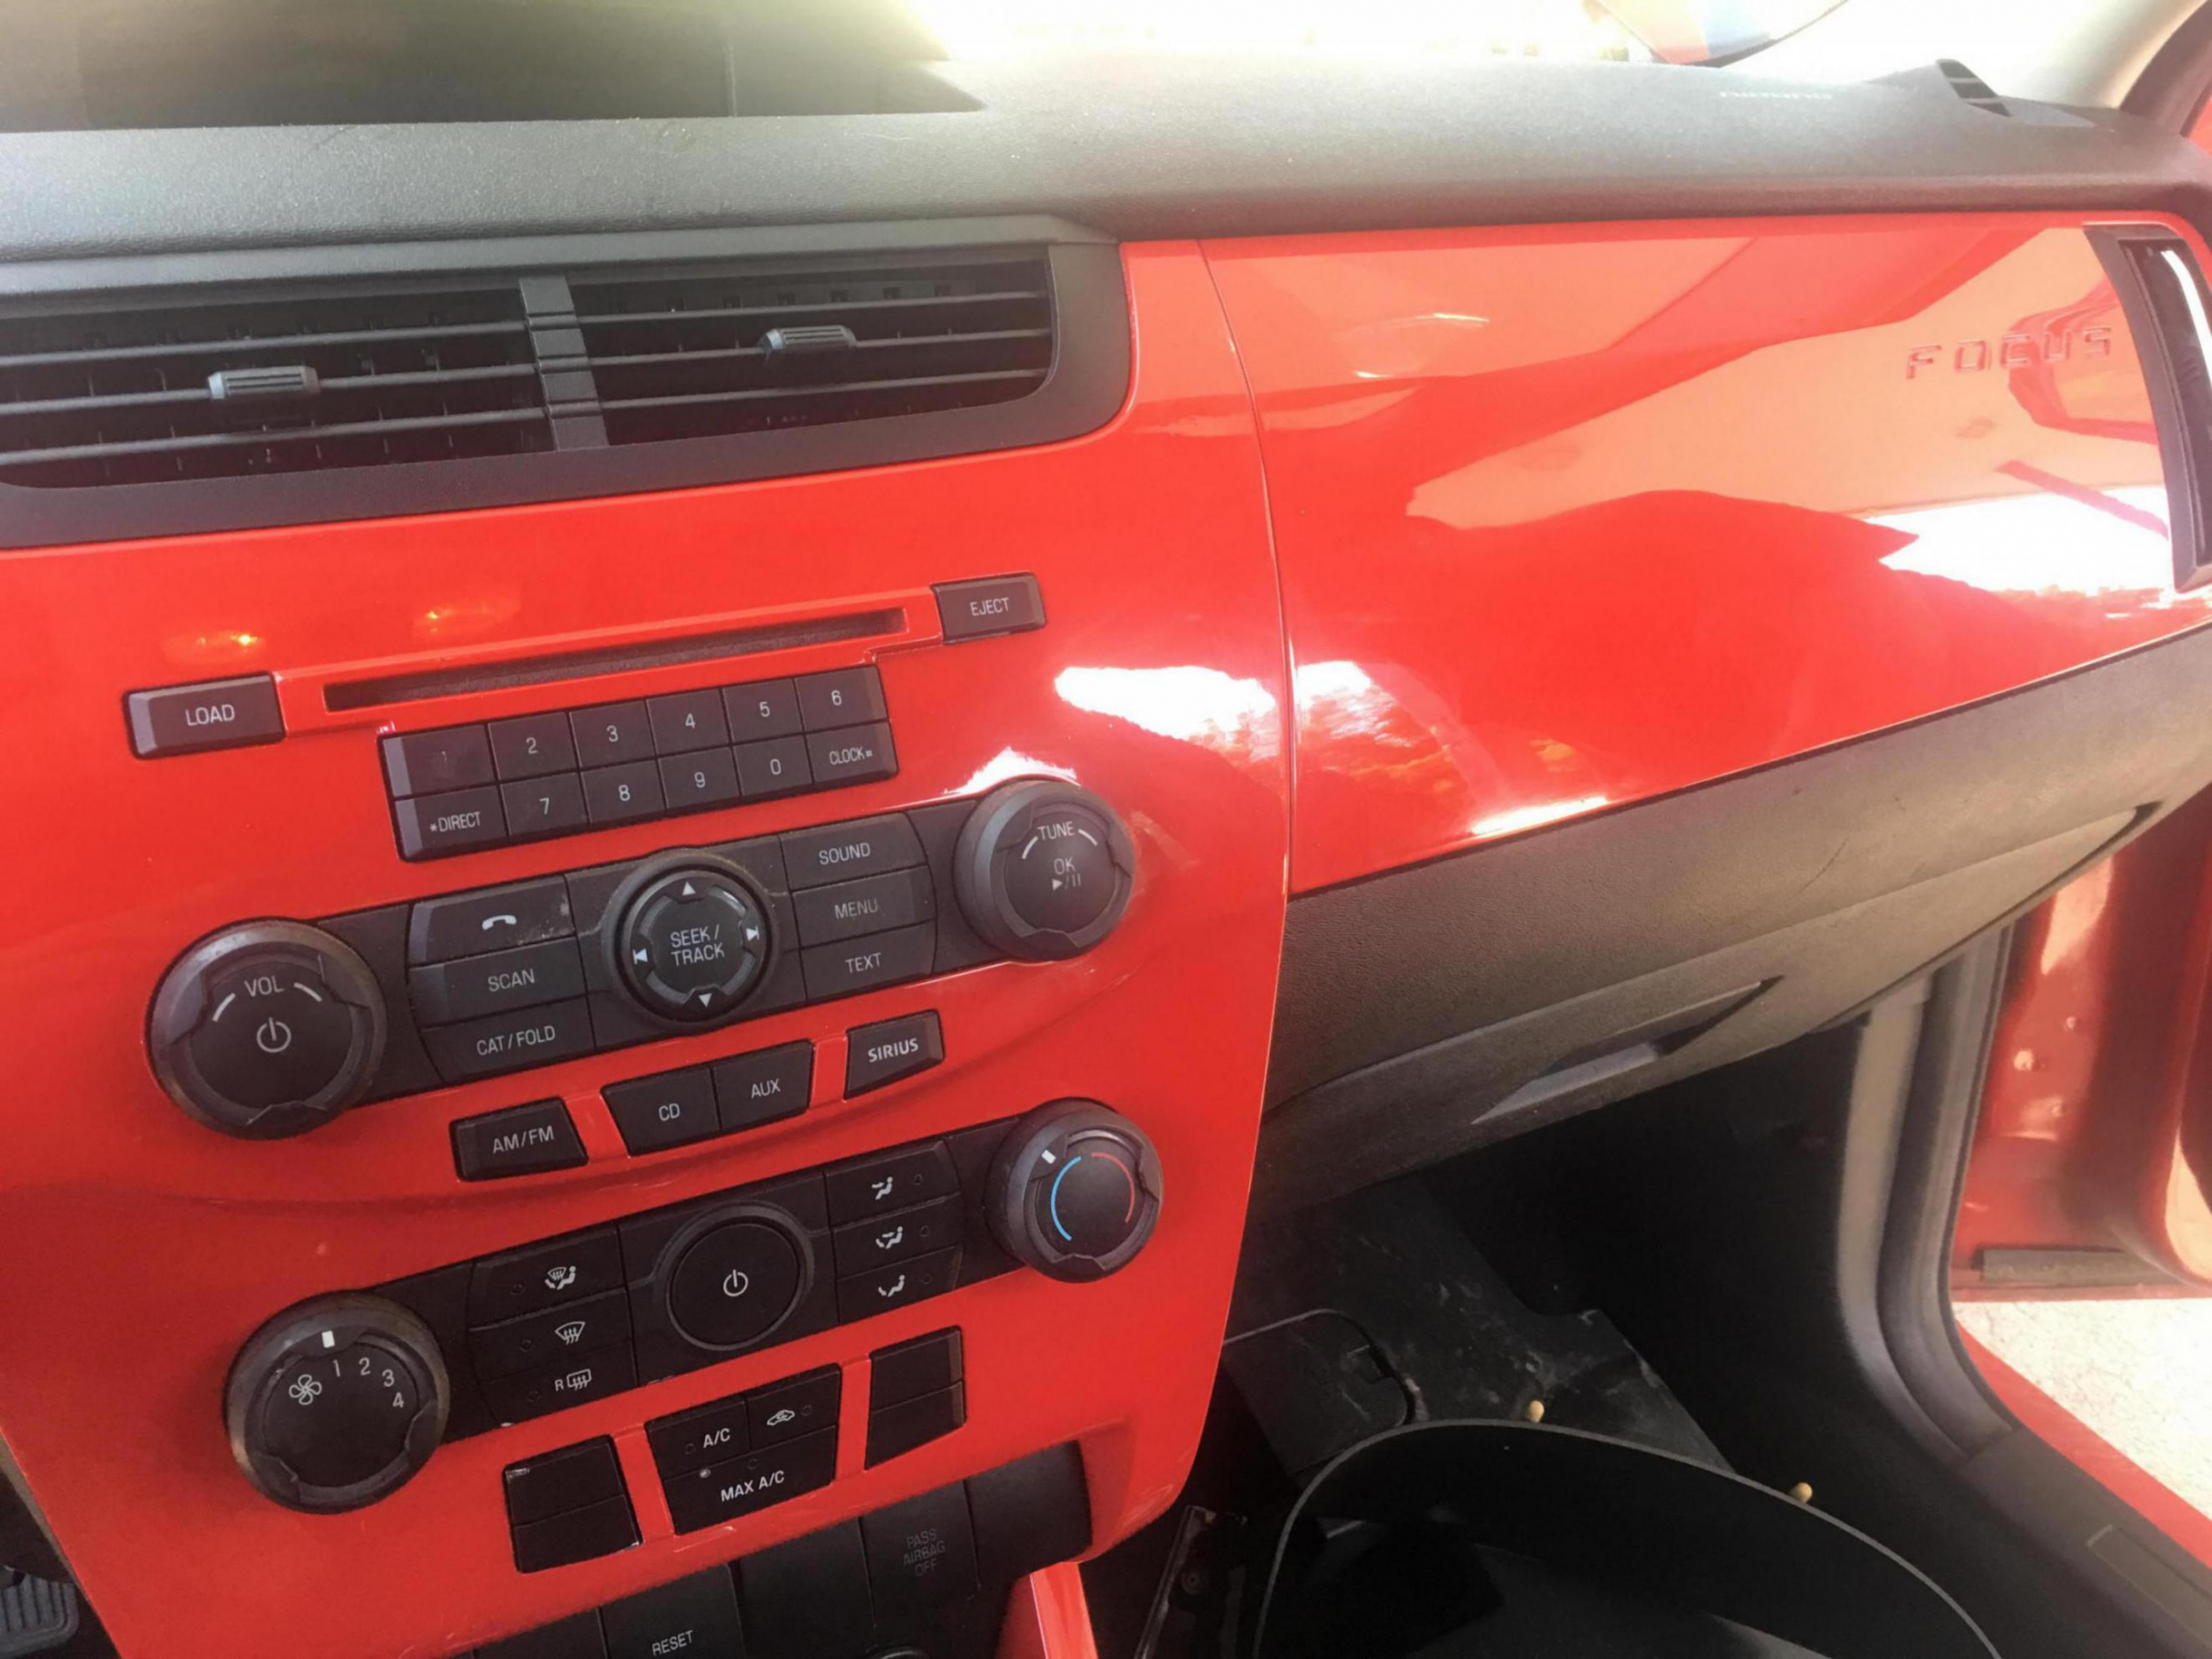 New splash of color to the instrument panel  - Ford Focus